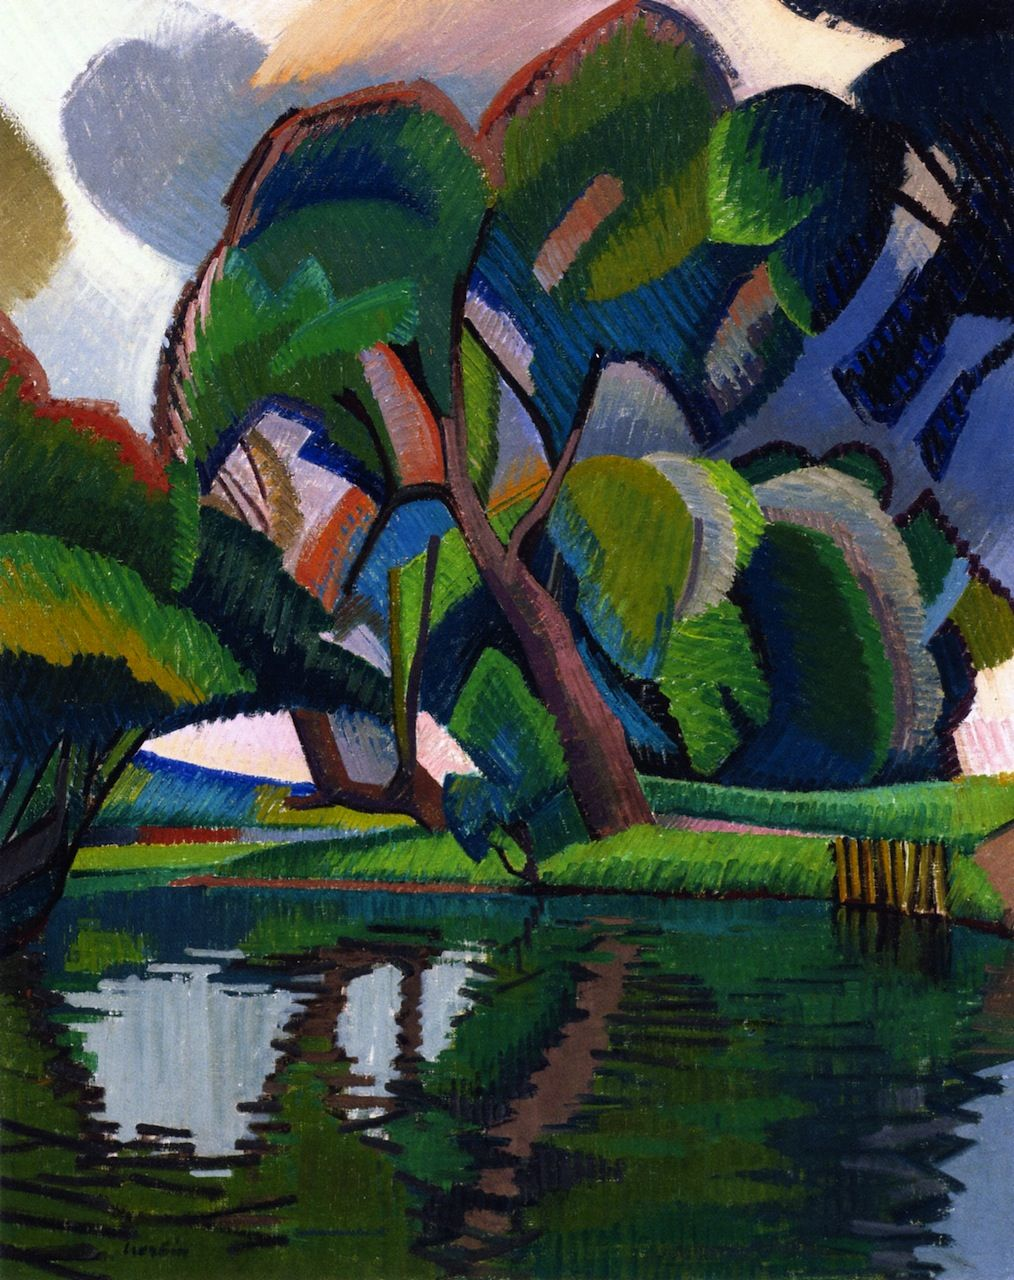 Auguste herbin qu vy france 1882 paris france 1960 for Auguste herbin oeuvre